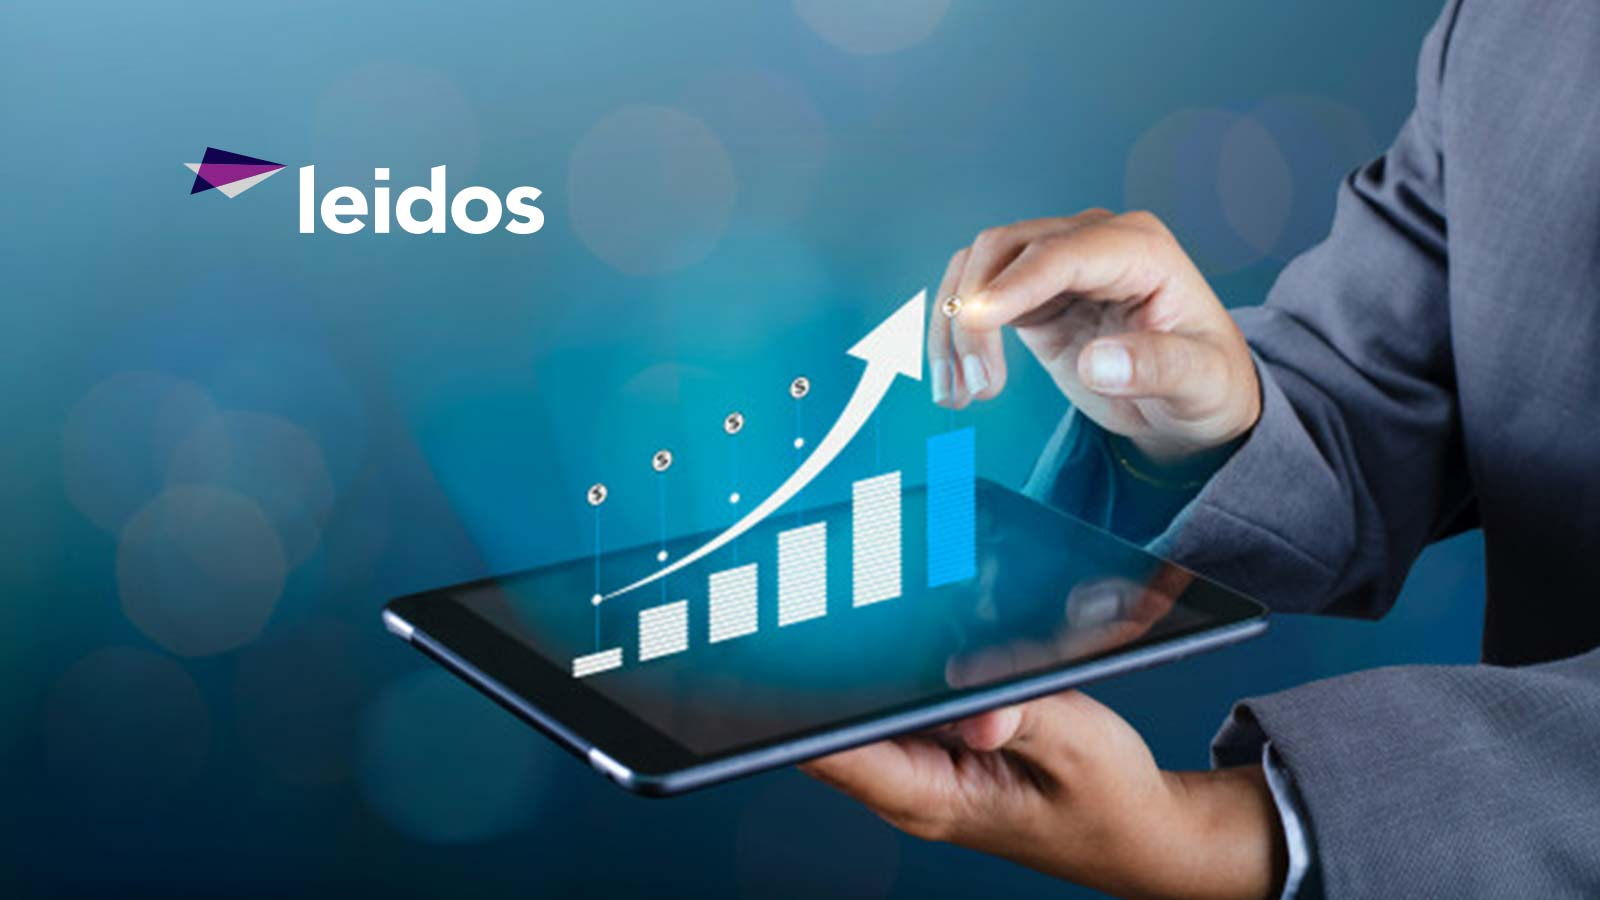 Leidos to acquire L3Harris Technologies Security Detection and Automation Businesses Expanding Product Portfolio in High Growth Global Security Market.